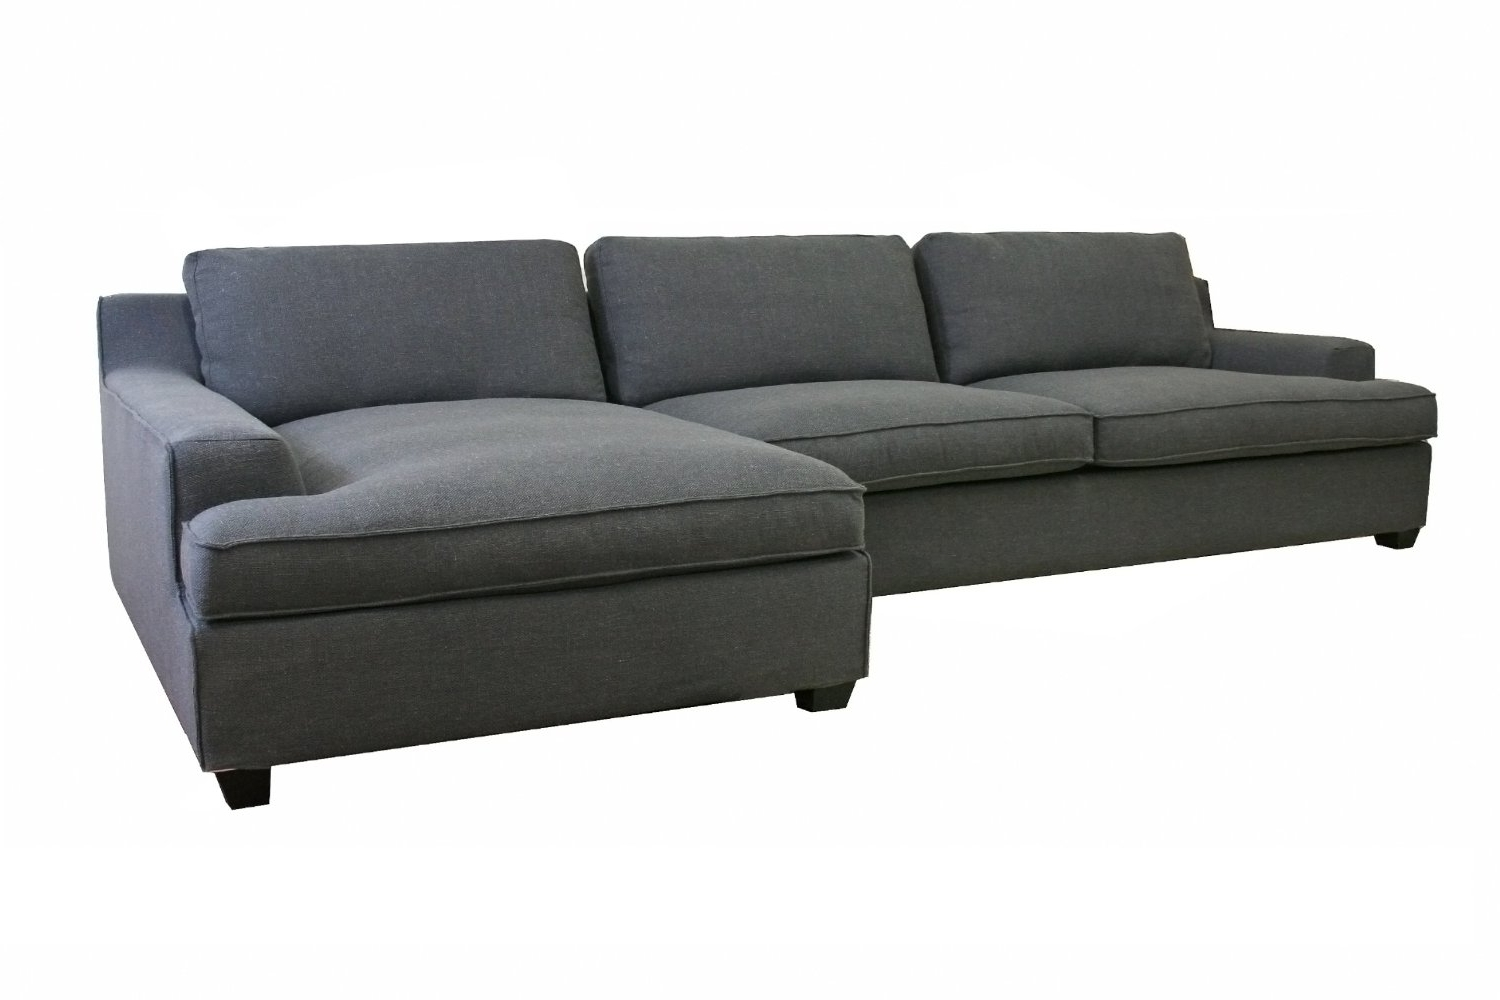 Small Couches With Chaise Throughout Famous Leather Loveseat With Chaise 72 Inch Sofa Sectional Sleeper Sofa (View 11 of 15)